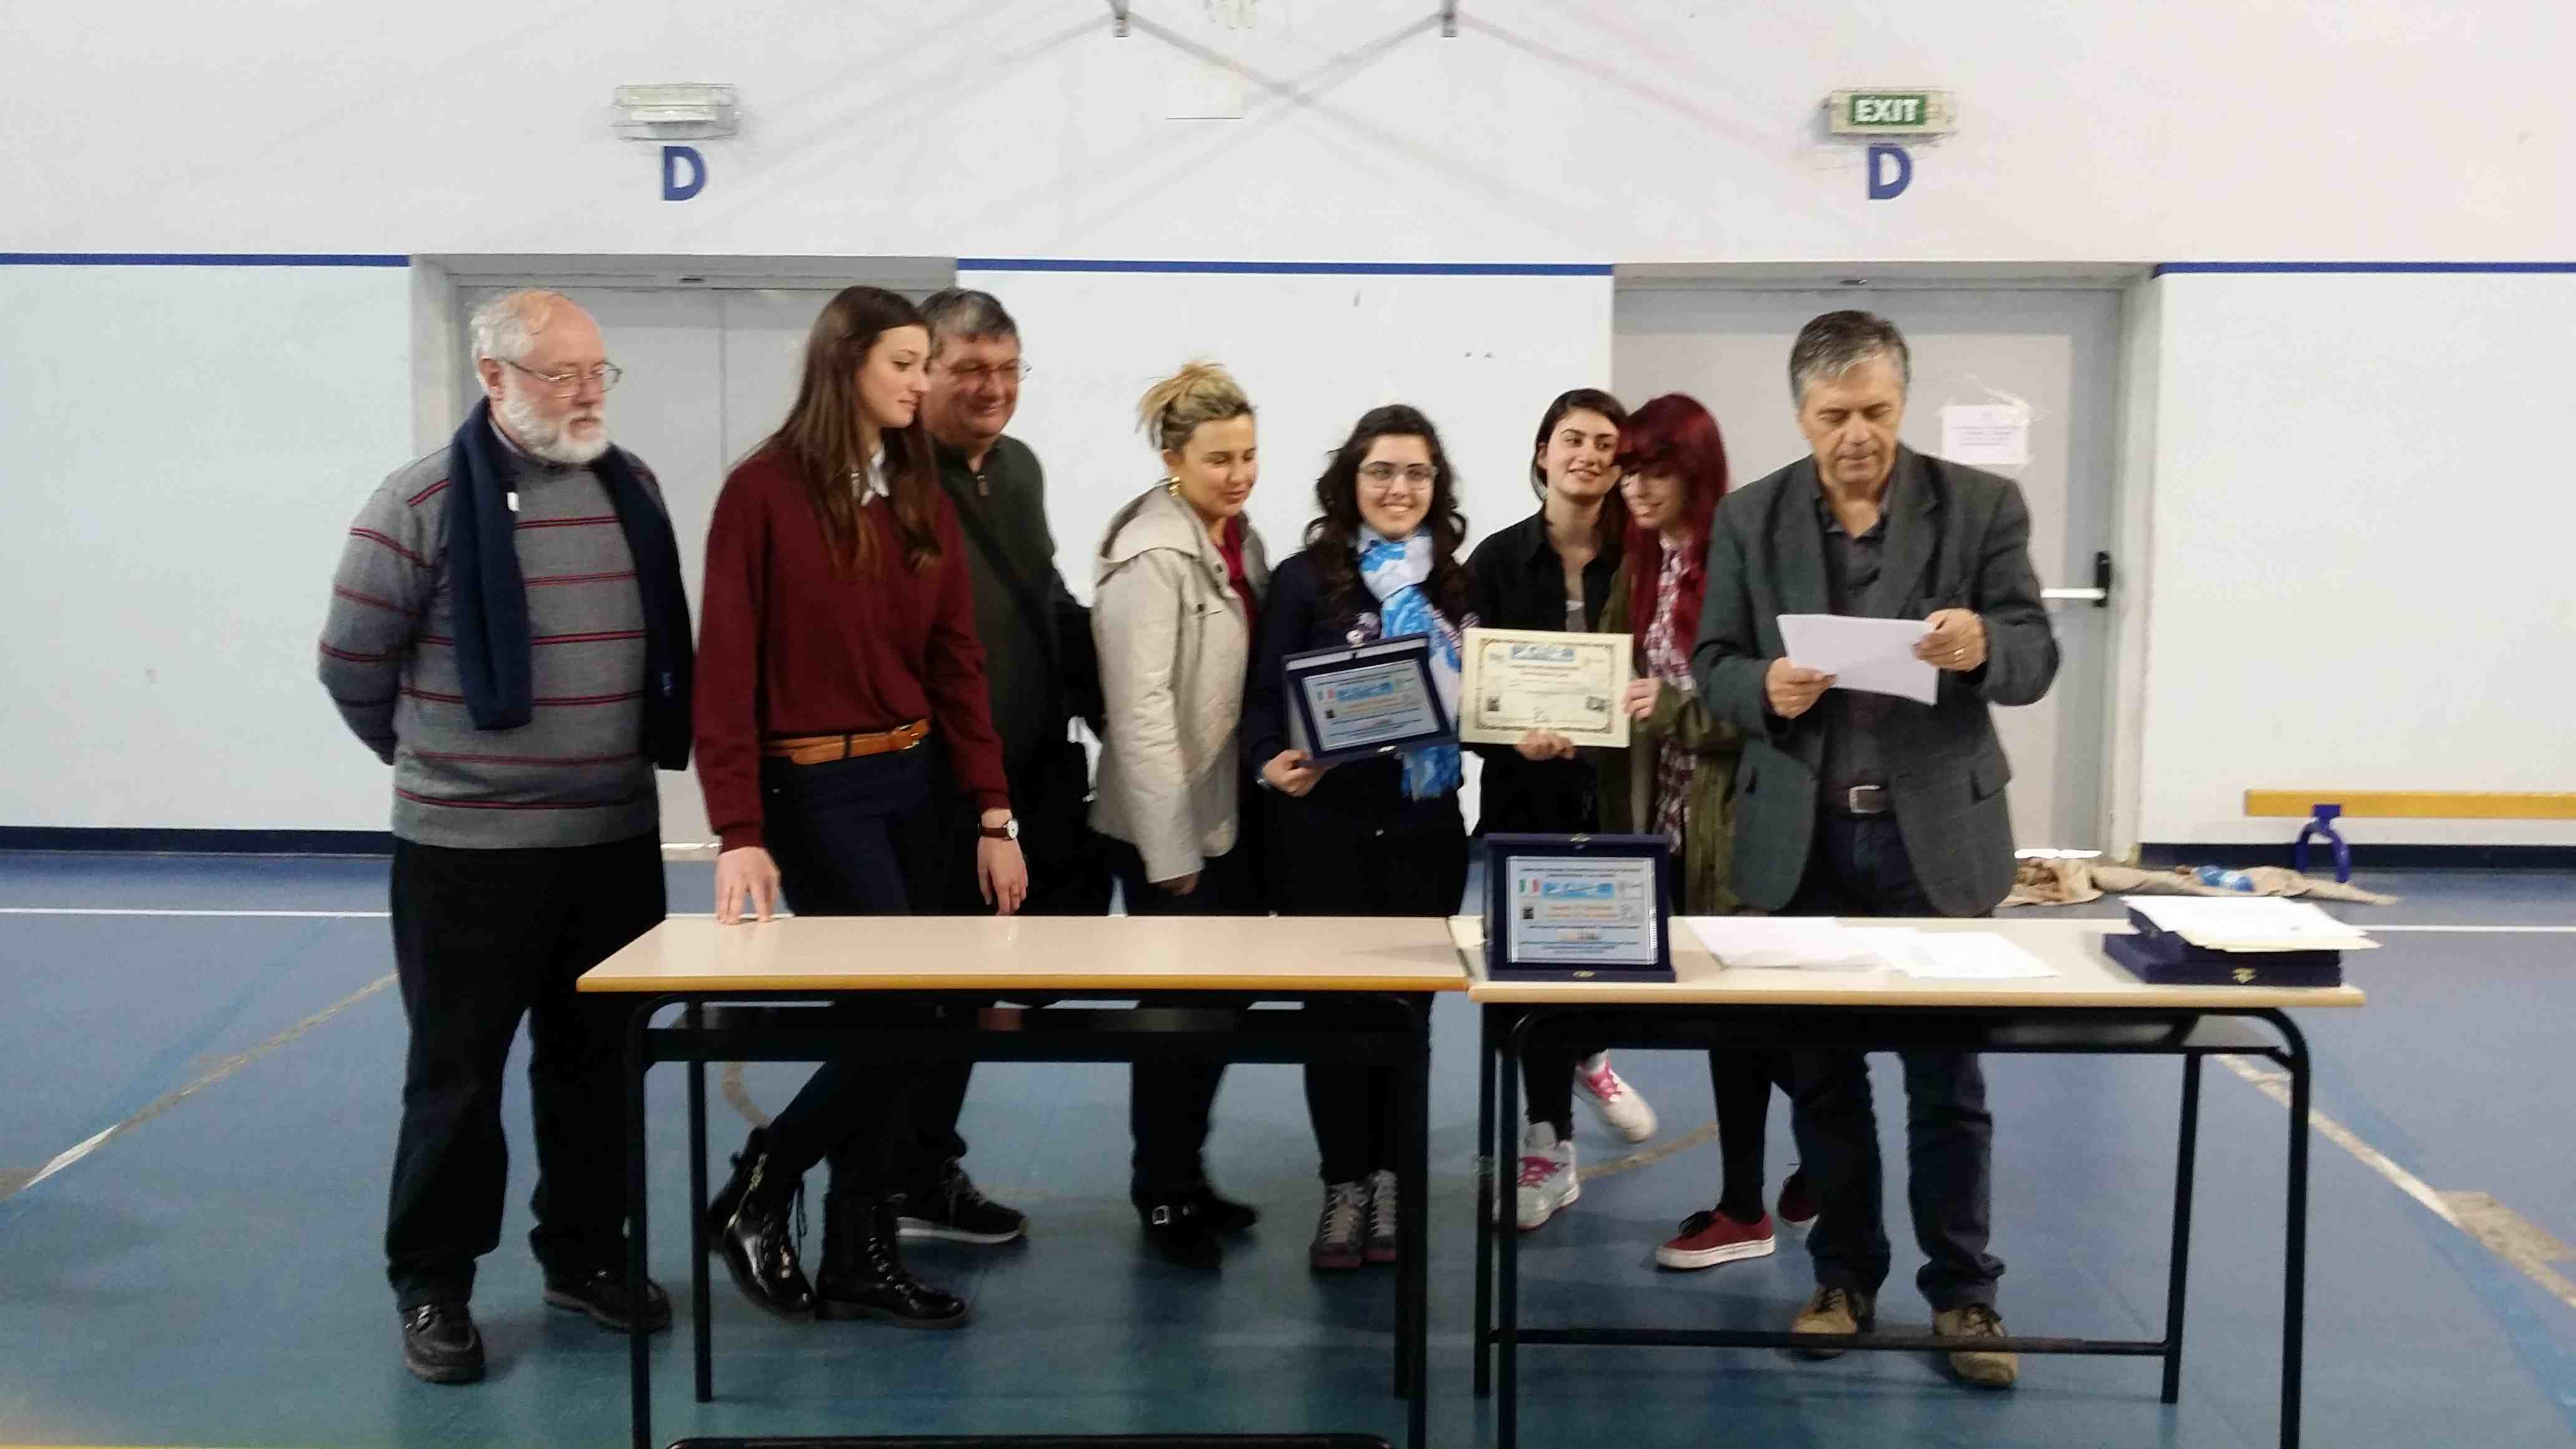 1° Classificata Sec. II Jun. Femminili Liceo Scientifico N. Cortese MADDALONI